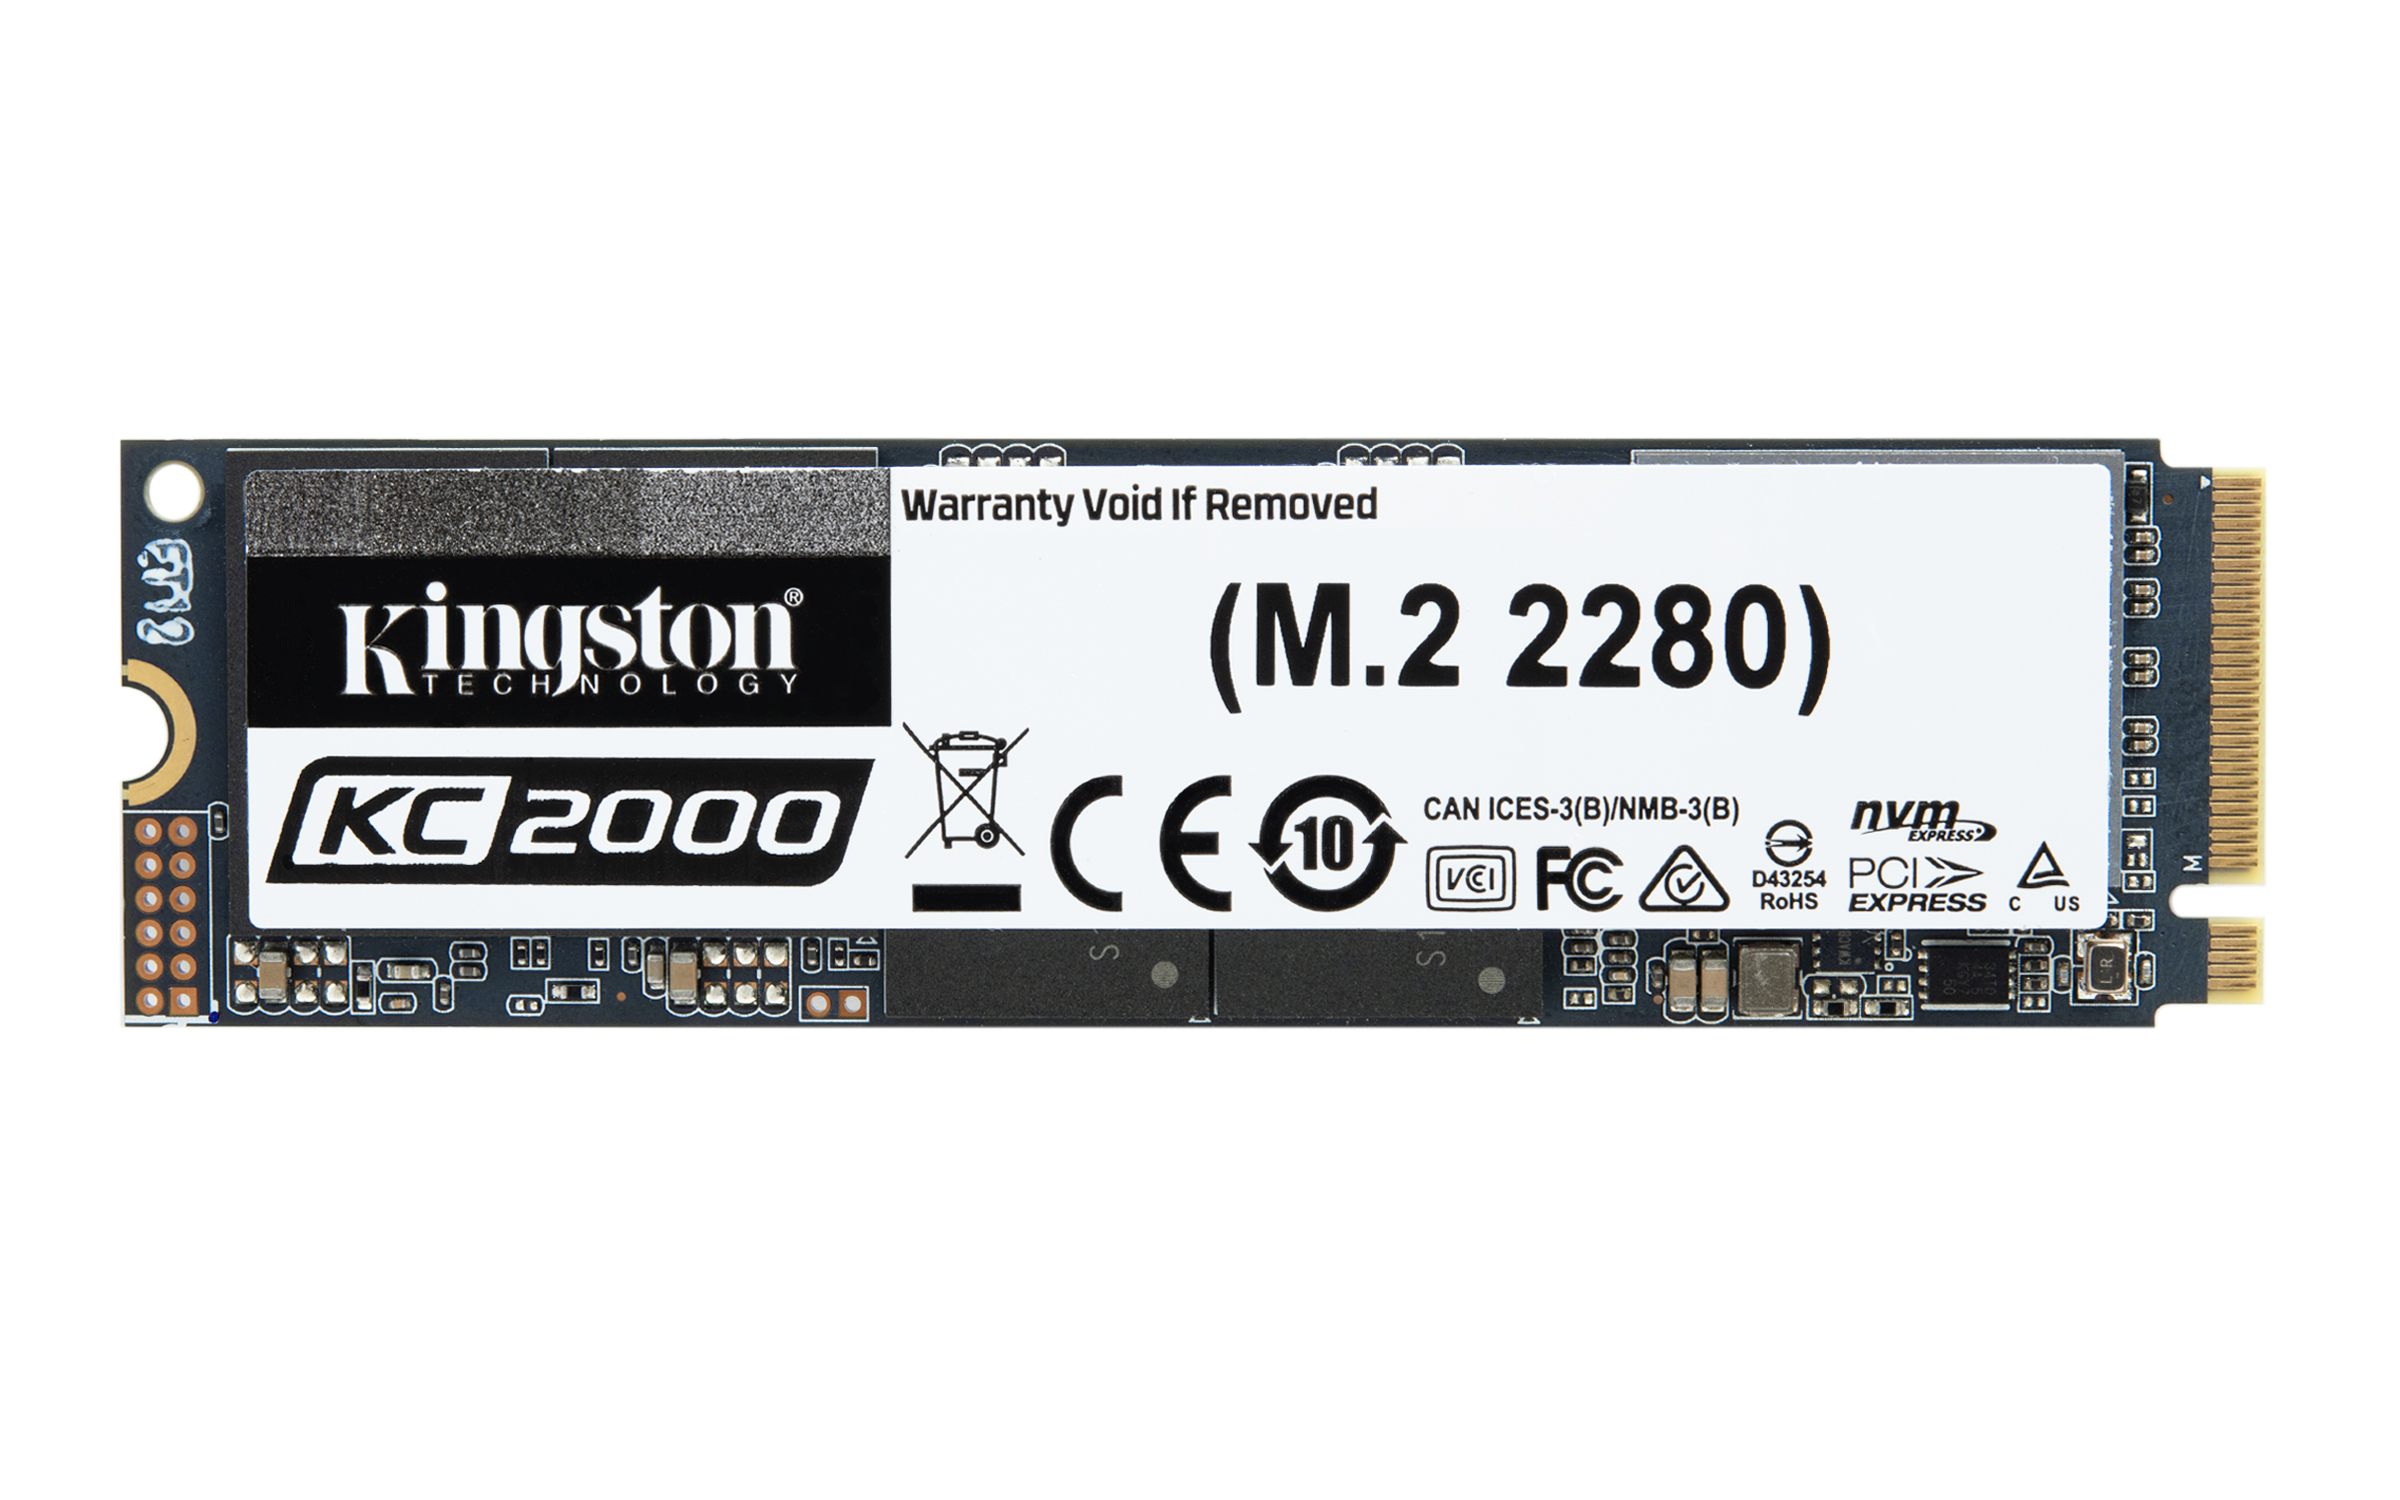 Kc2000 Unidad De Estado Sólido M.2 1000 Gb Pci Express 3.0 3d Tlc Nvme